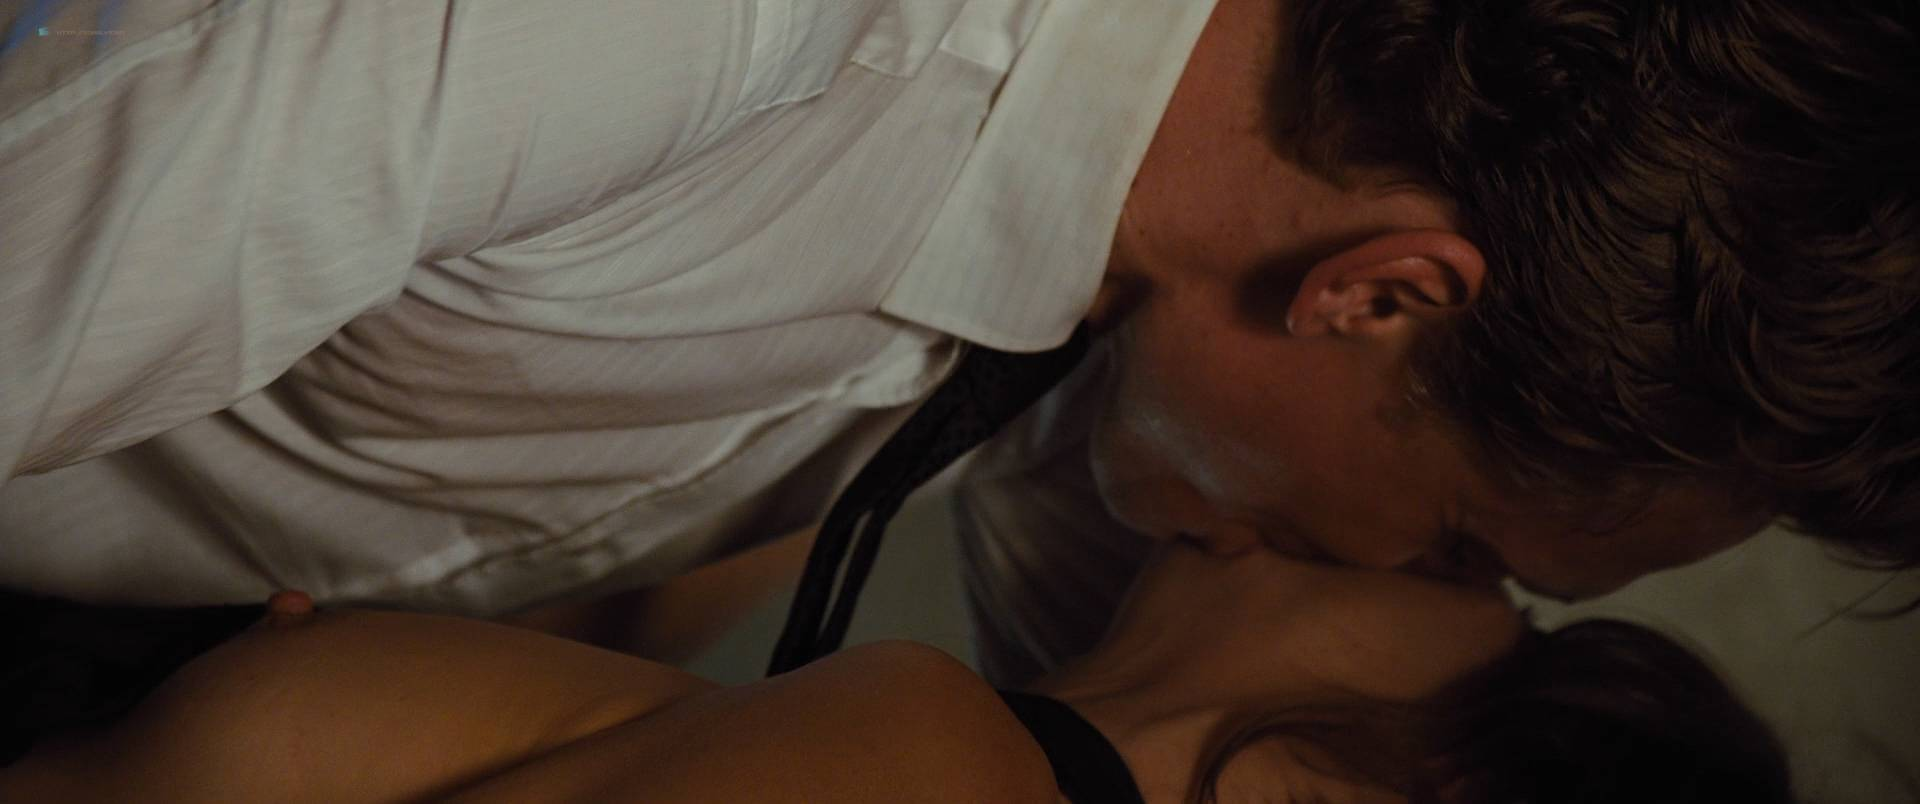 Sienna Miller nude boobs and hot sex - High-Rise (2015) HD 1080p (9)